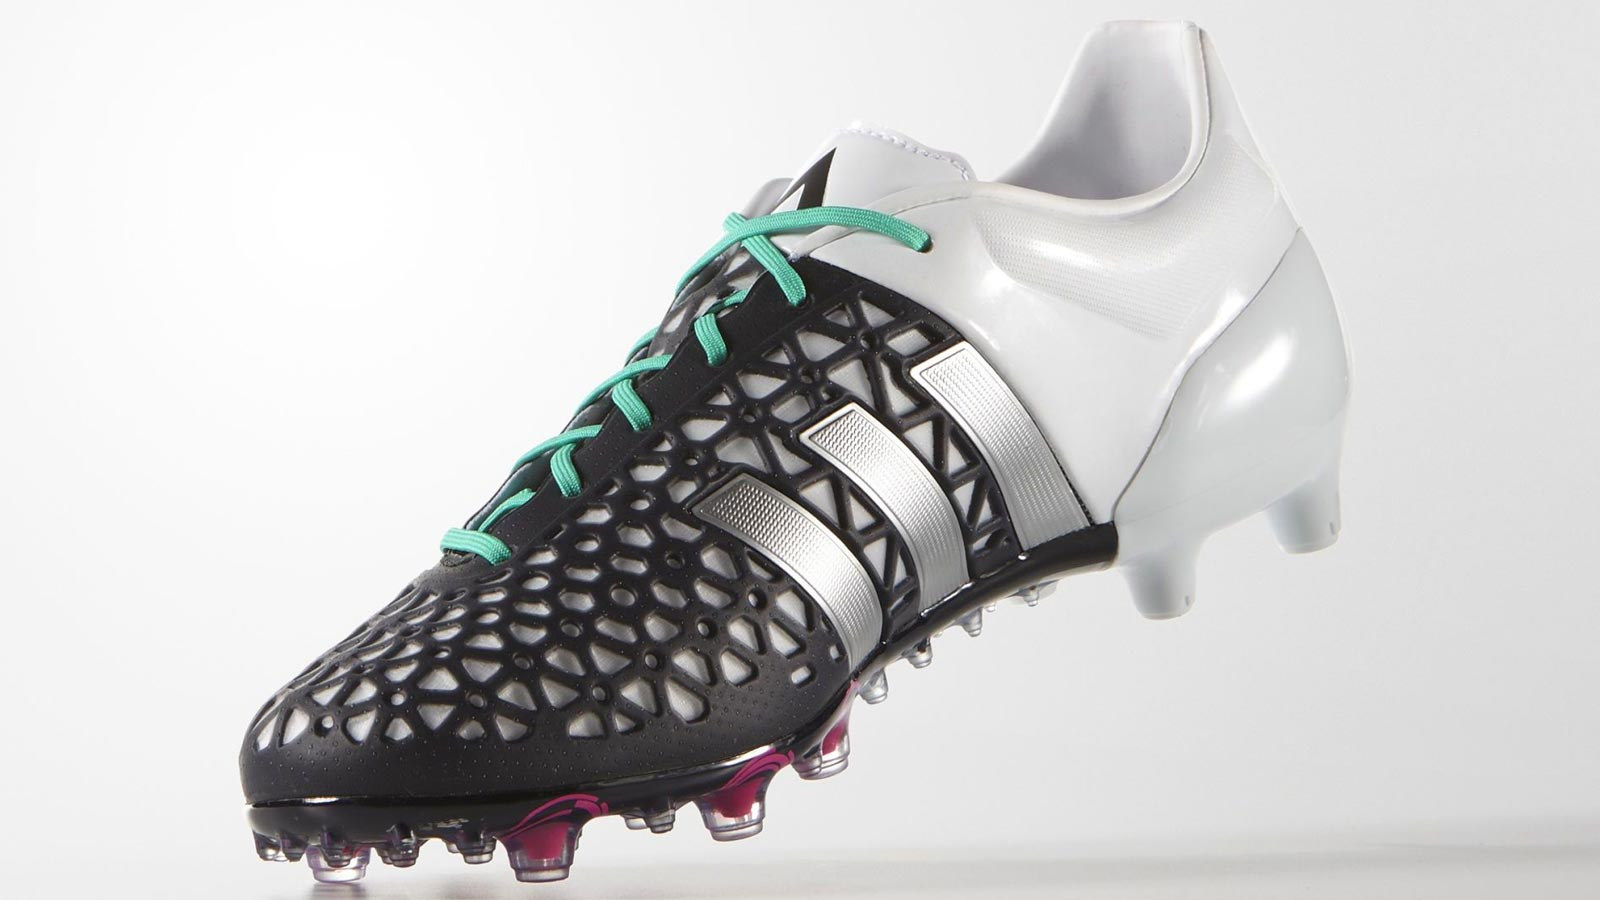 Black / White / Pink Adidas Ace 2015-2016 Boots Released - Last-Ever  First-Gen Adidas Ace Colorway - Footy Headlines